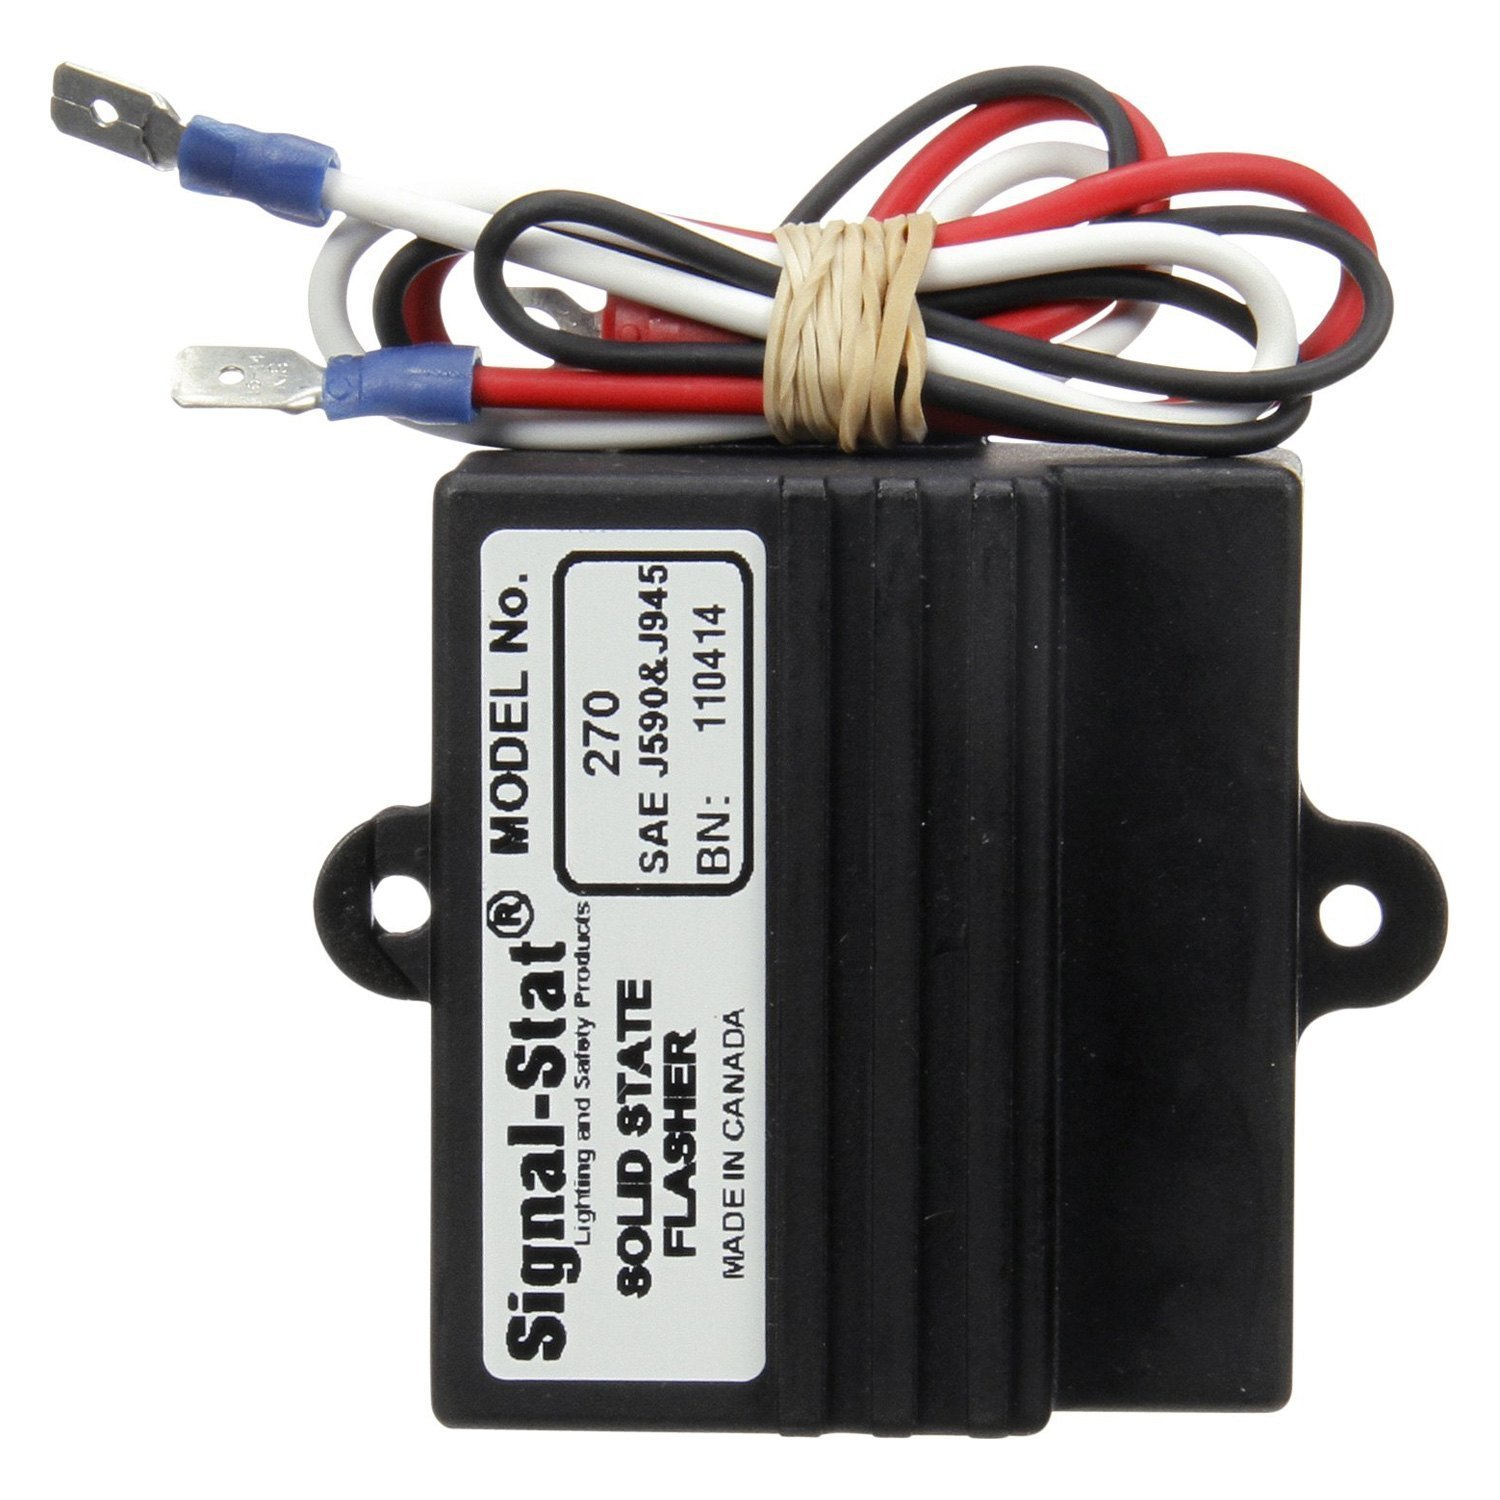 hight resolution of signal stat 242 flasher wiring diagram trusted wiring diagramtruck lite signal stat flasher module